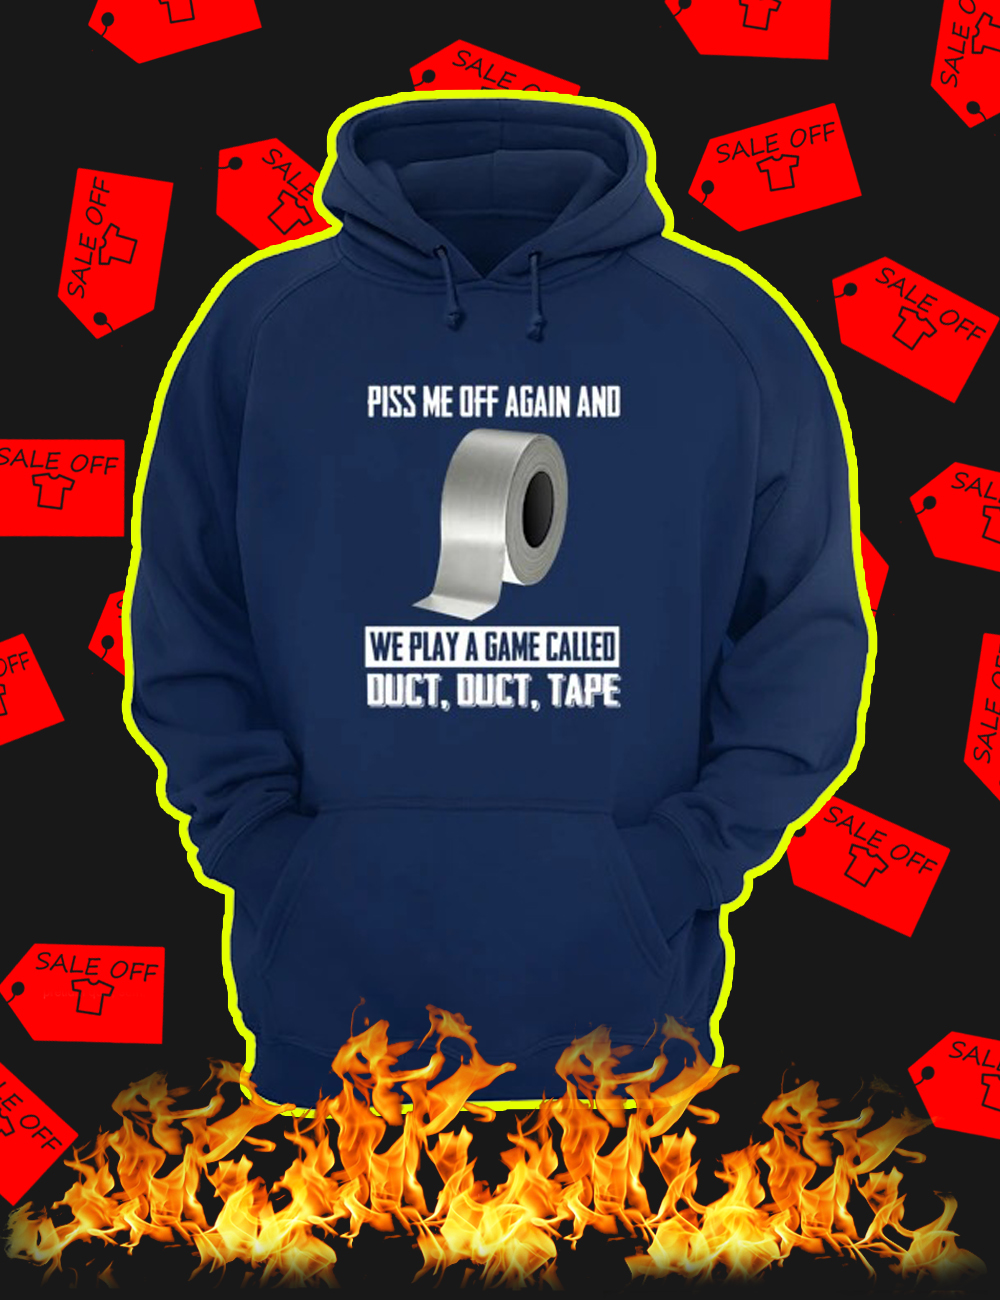 Piss me off again and we play a game called duct duct tape hoodie